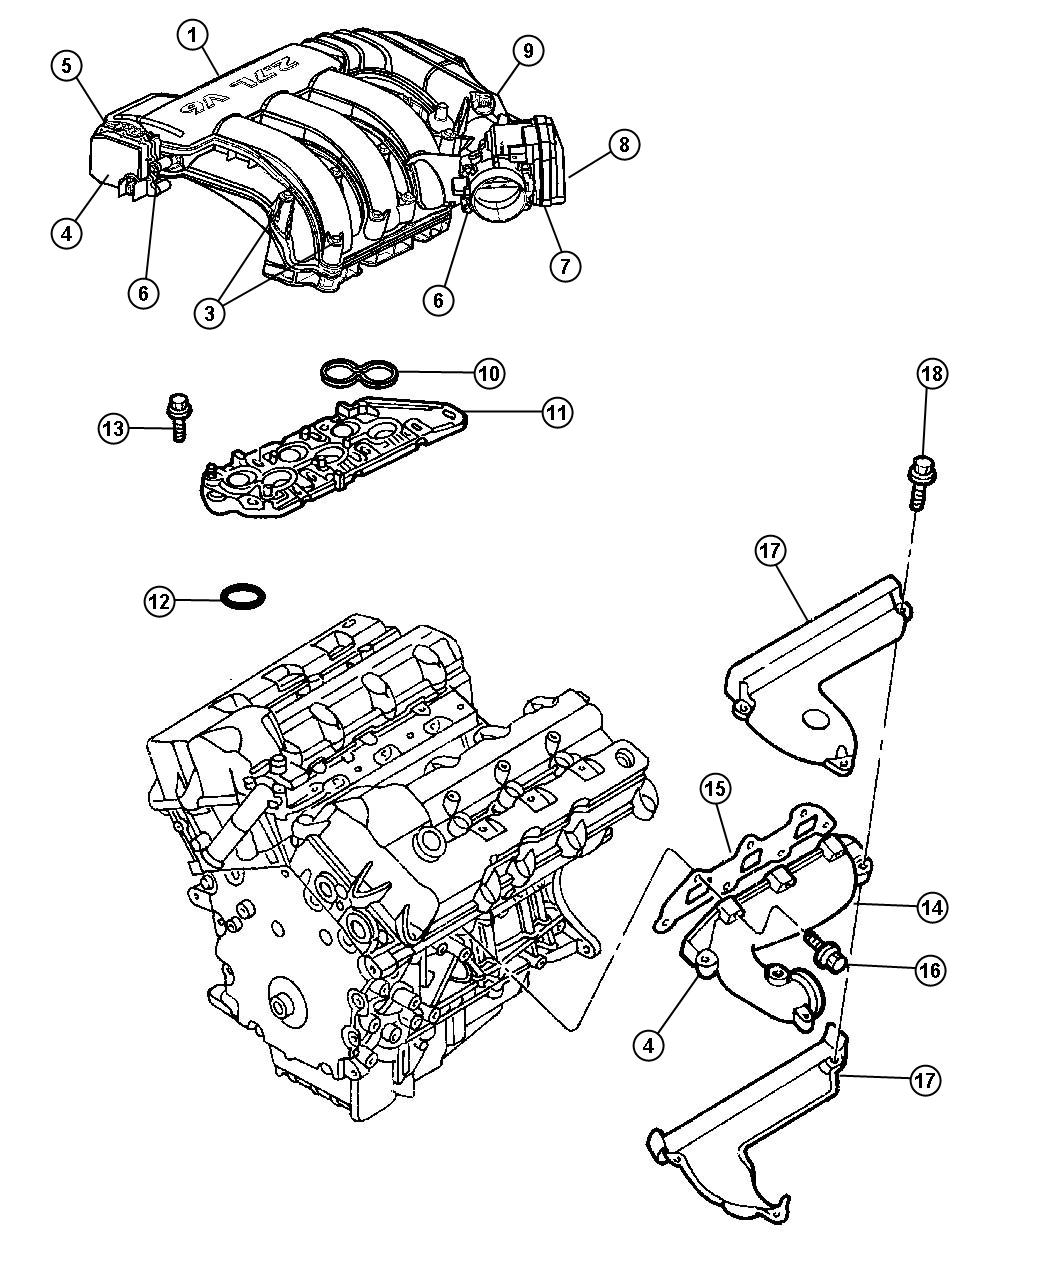 Dodge Hemi 5 7 Engine Diagram